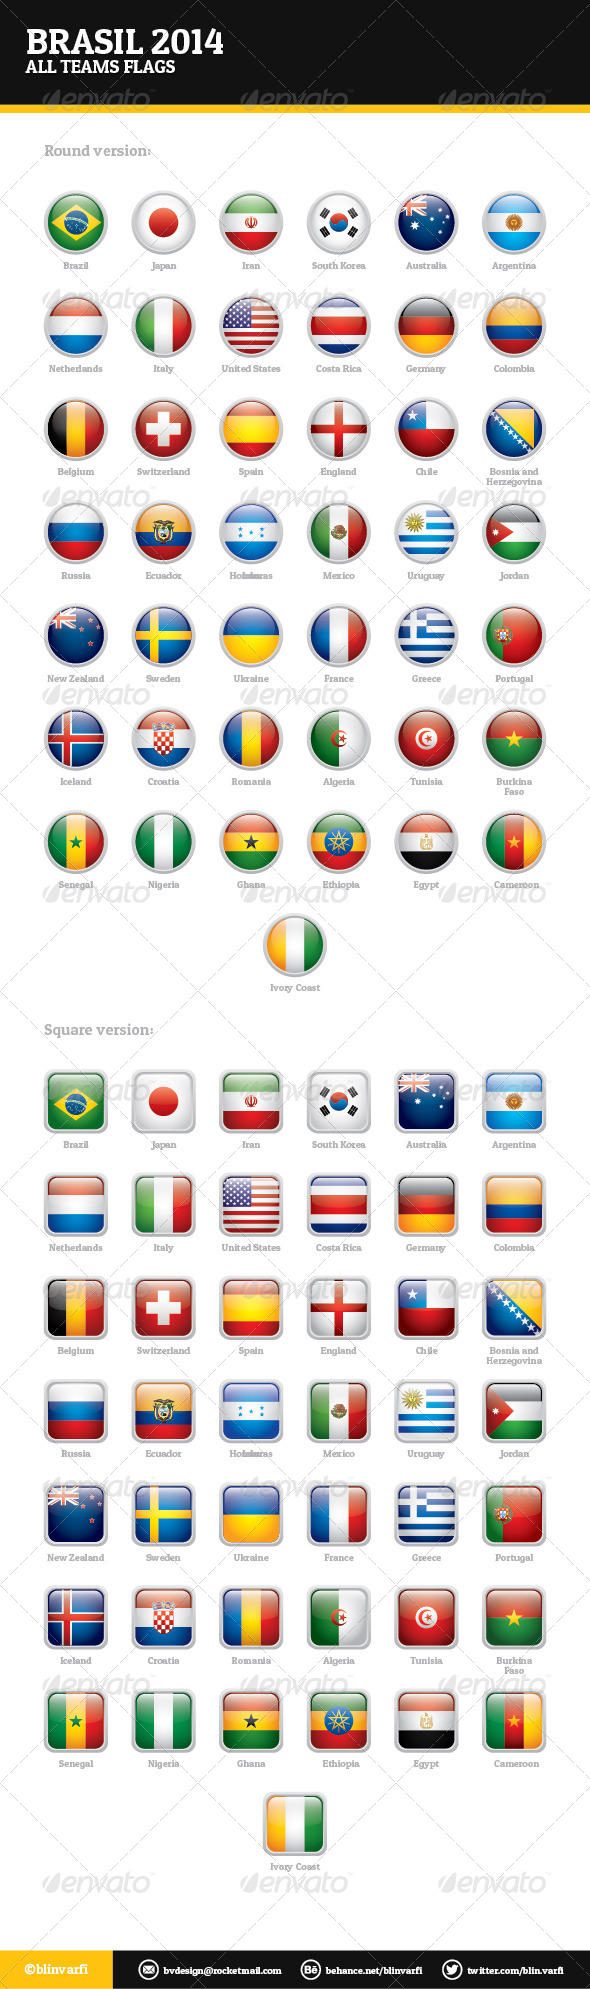 GraphicRiver Brasil 2014 All Teams Flags 6161408